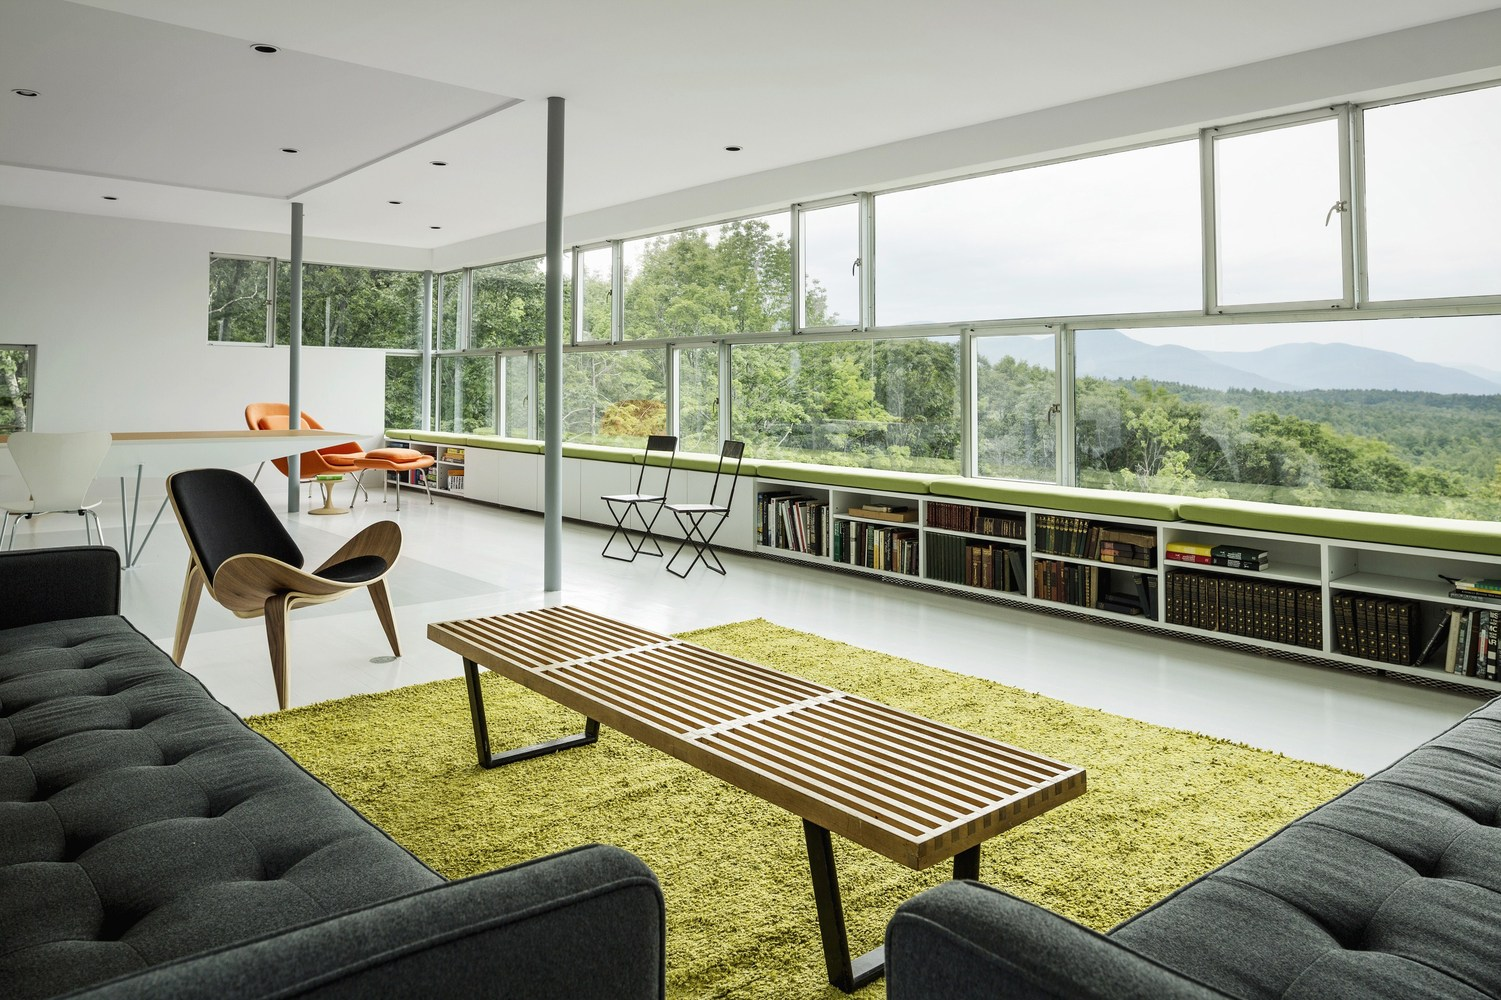 The common living space is located on the top floor and fully exploits the view of nature.